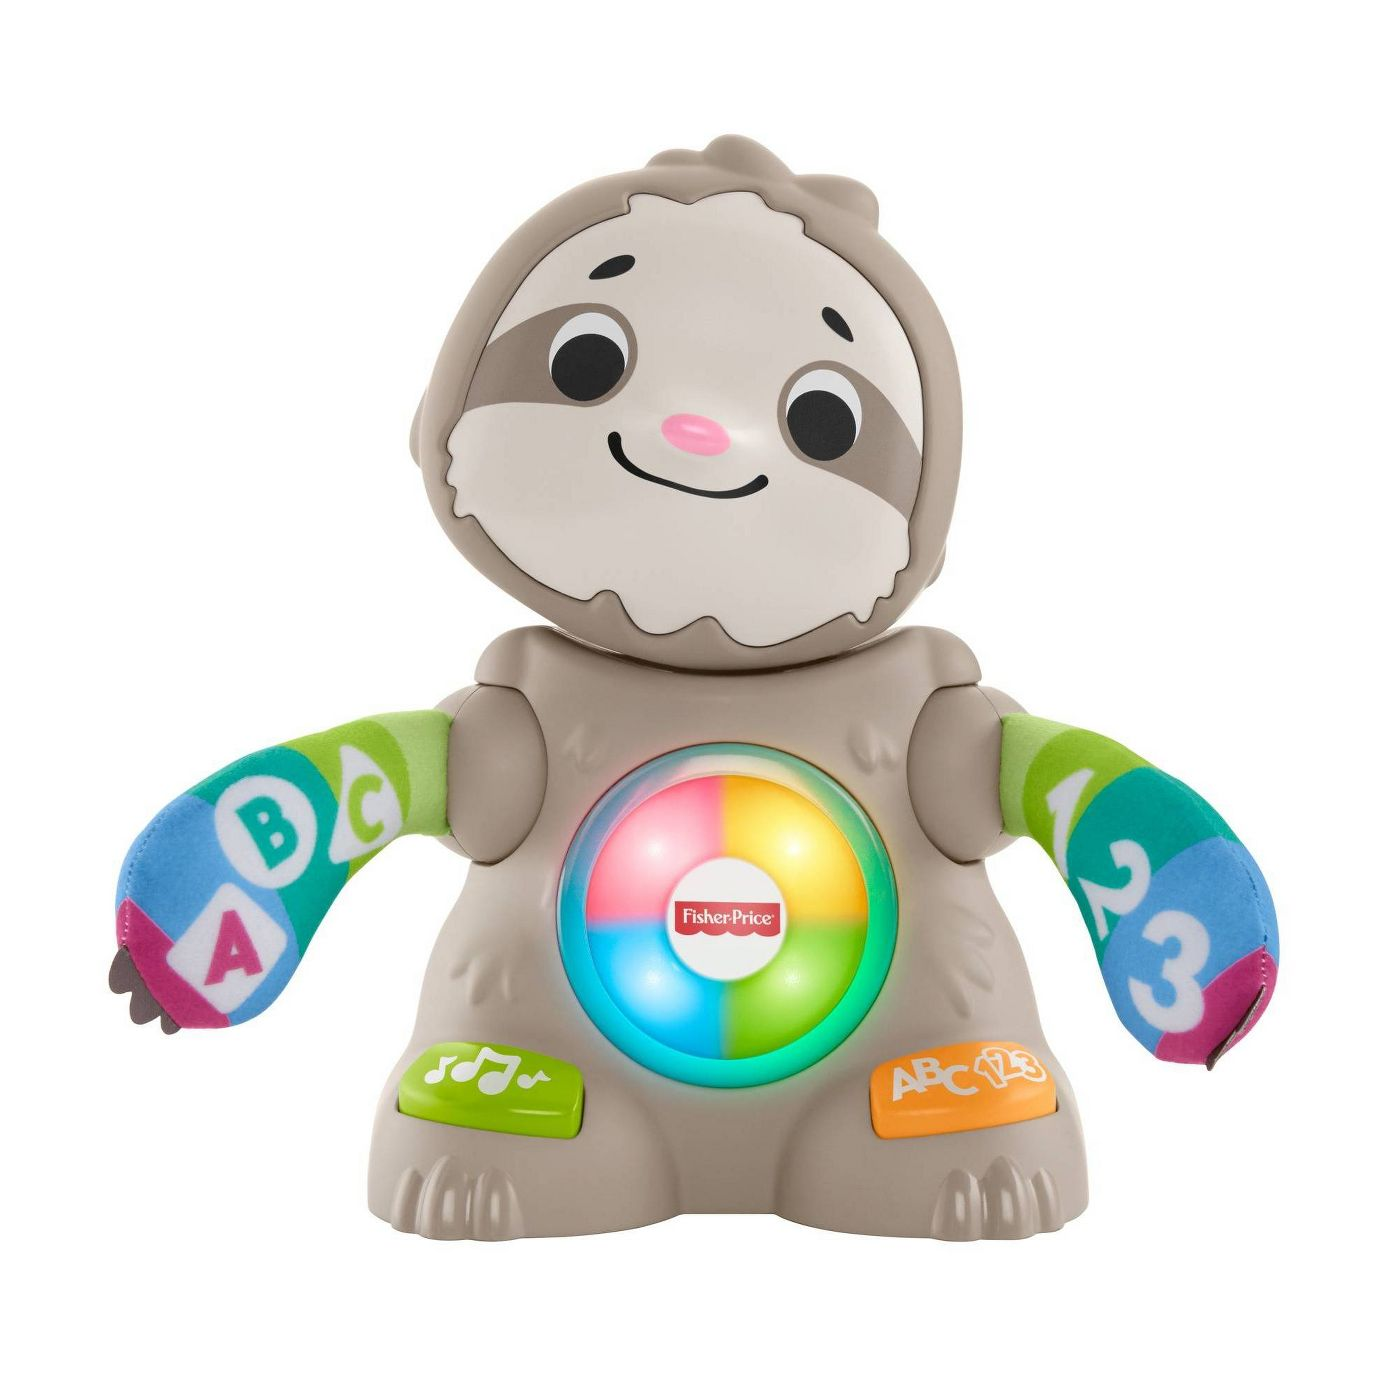 Fisher-Price Linkimals Smooth Moves Sloth - image 1 of 11